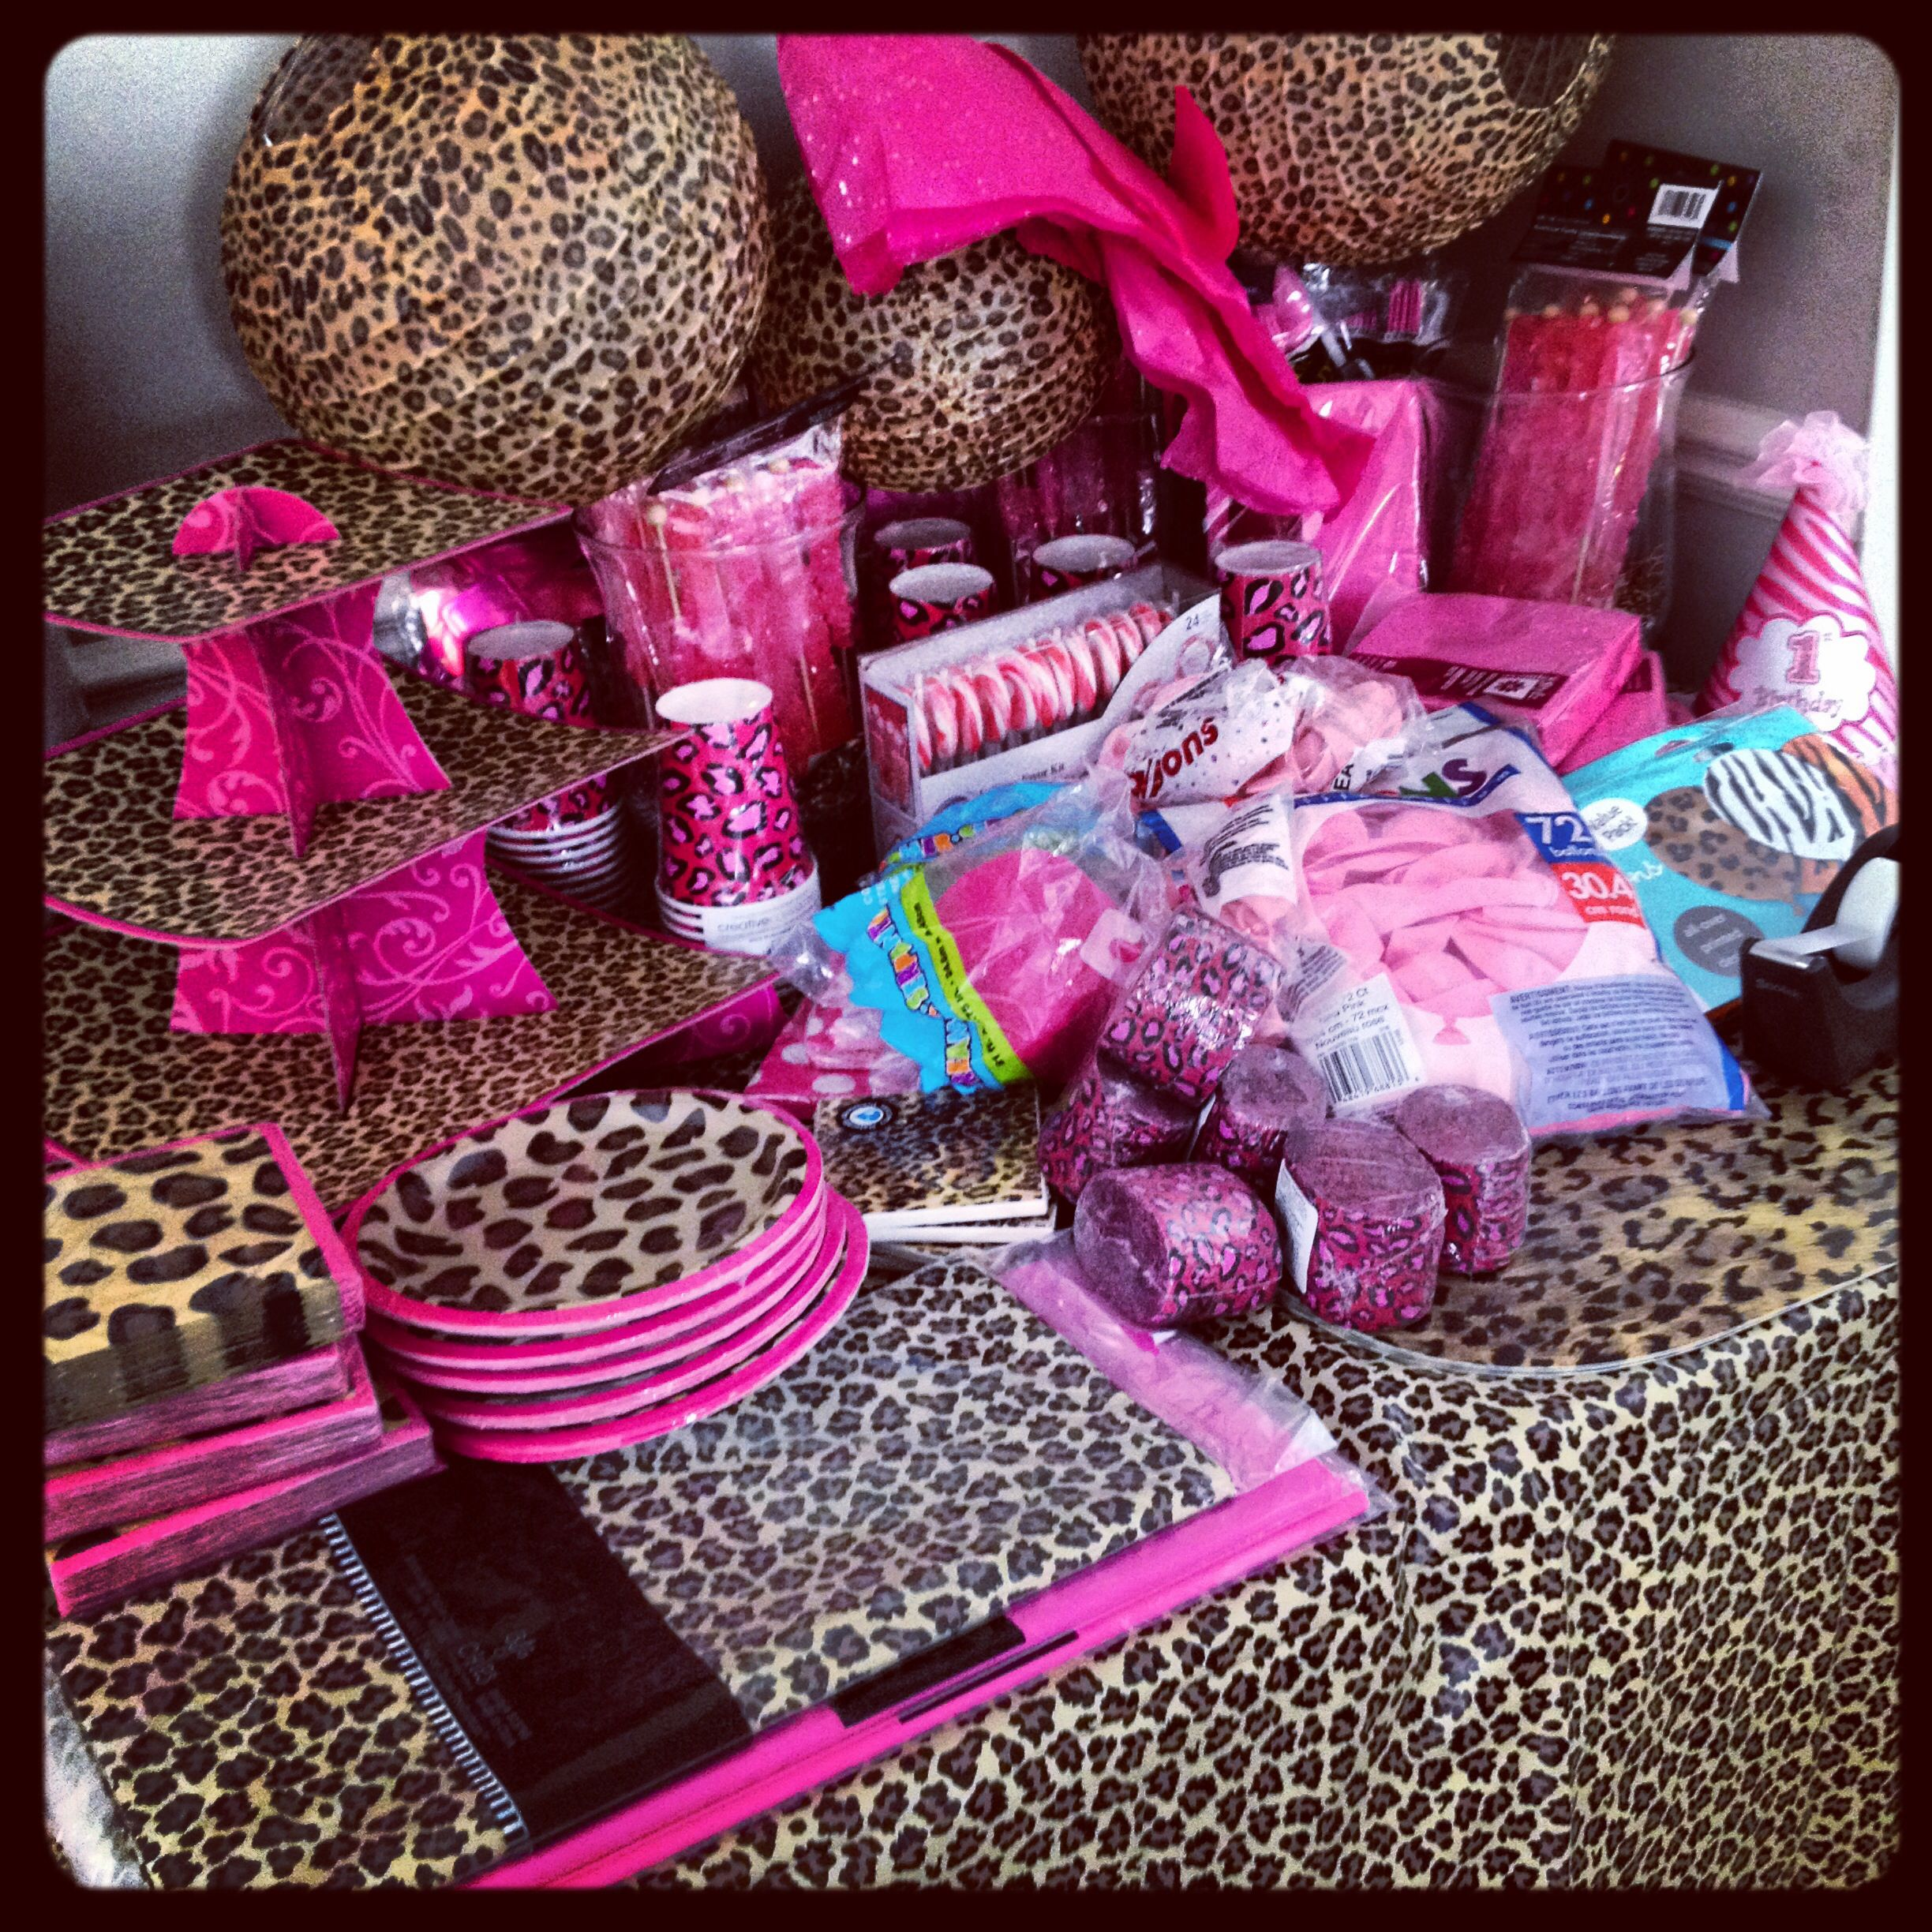 Hot Pink And Leopard Print Baby Shower   I Want To Know Where To Find All